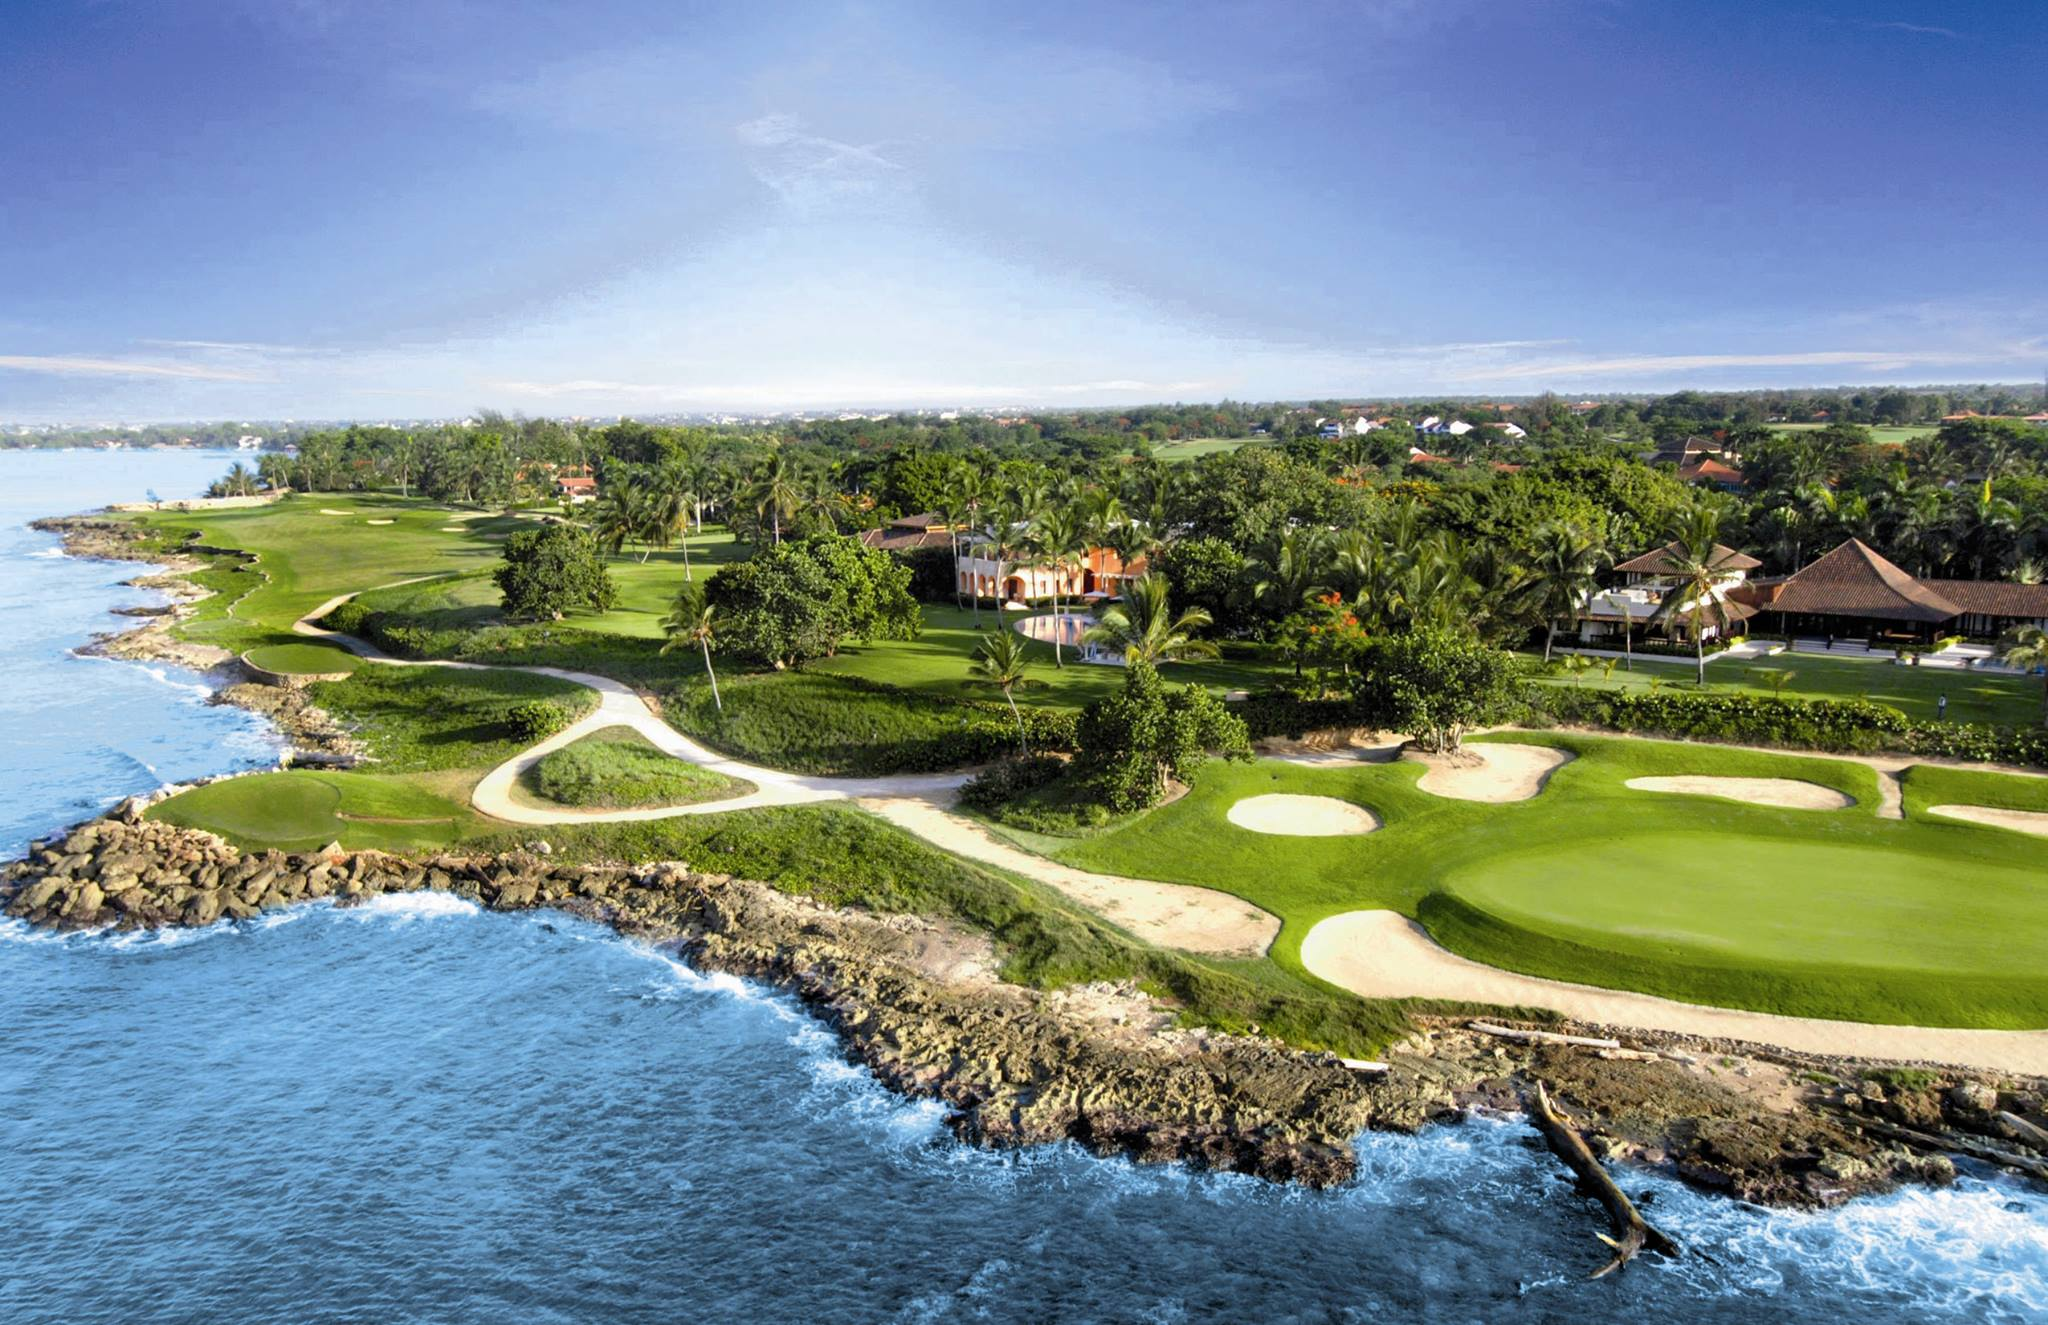 The Dominican Republic's Casa De Campo